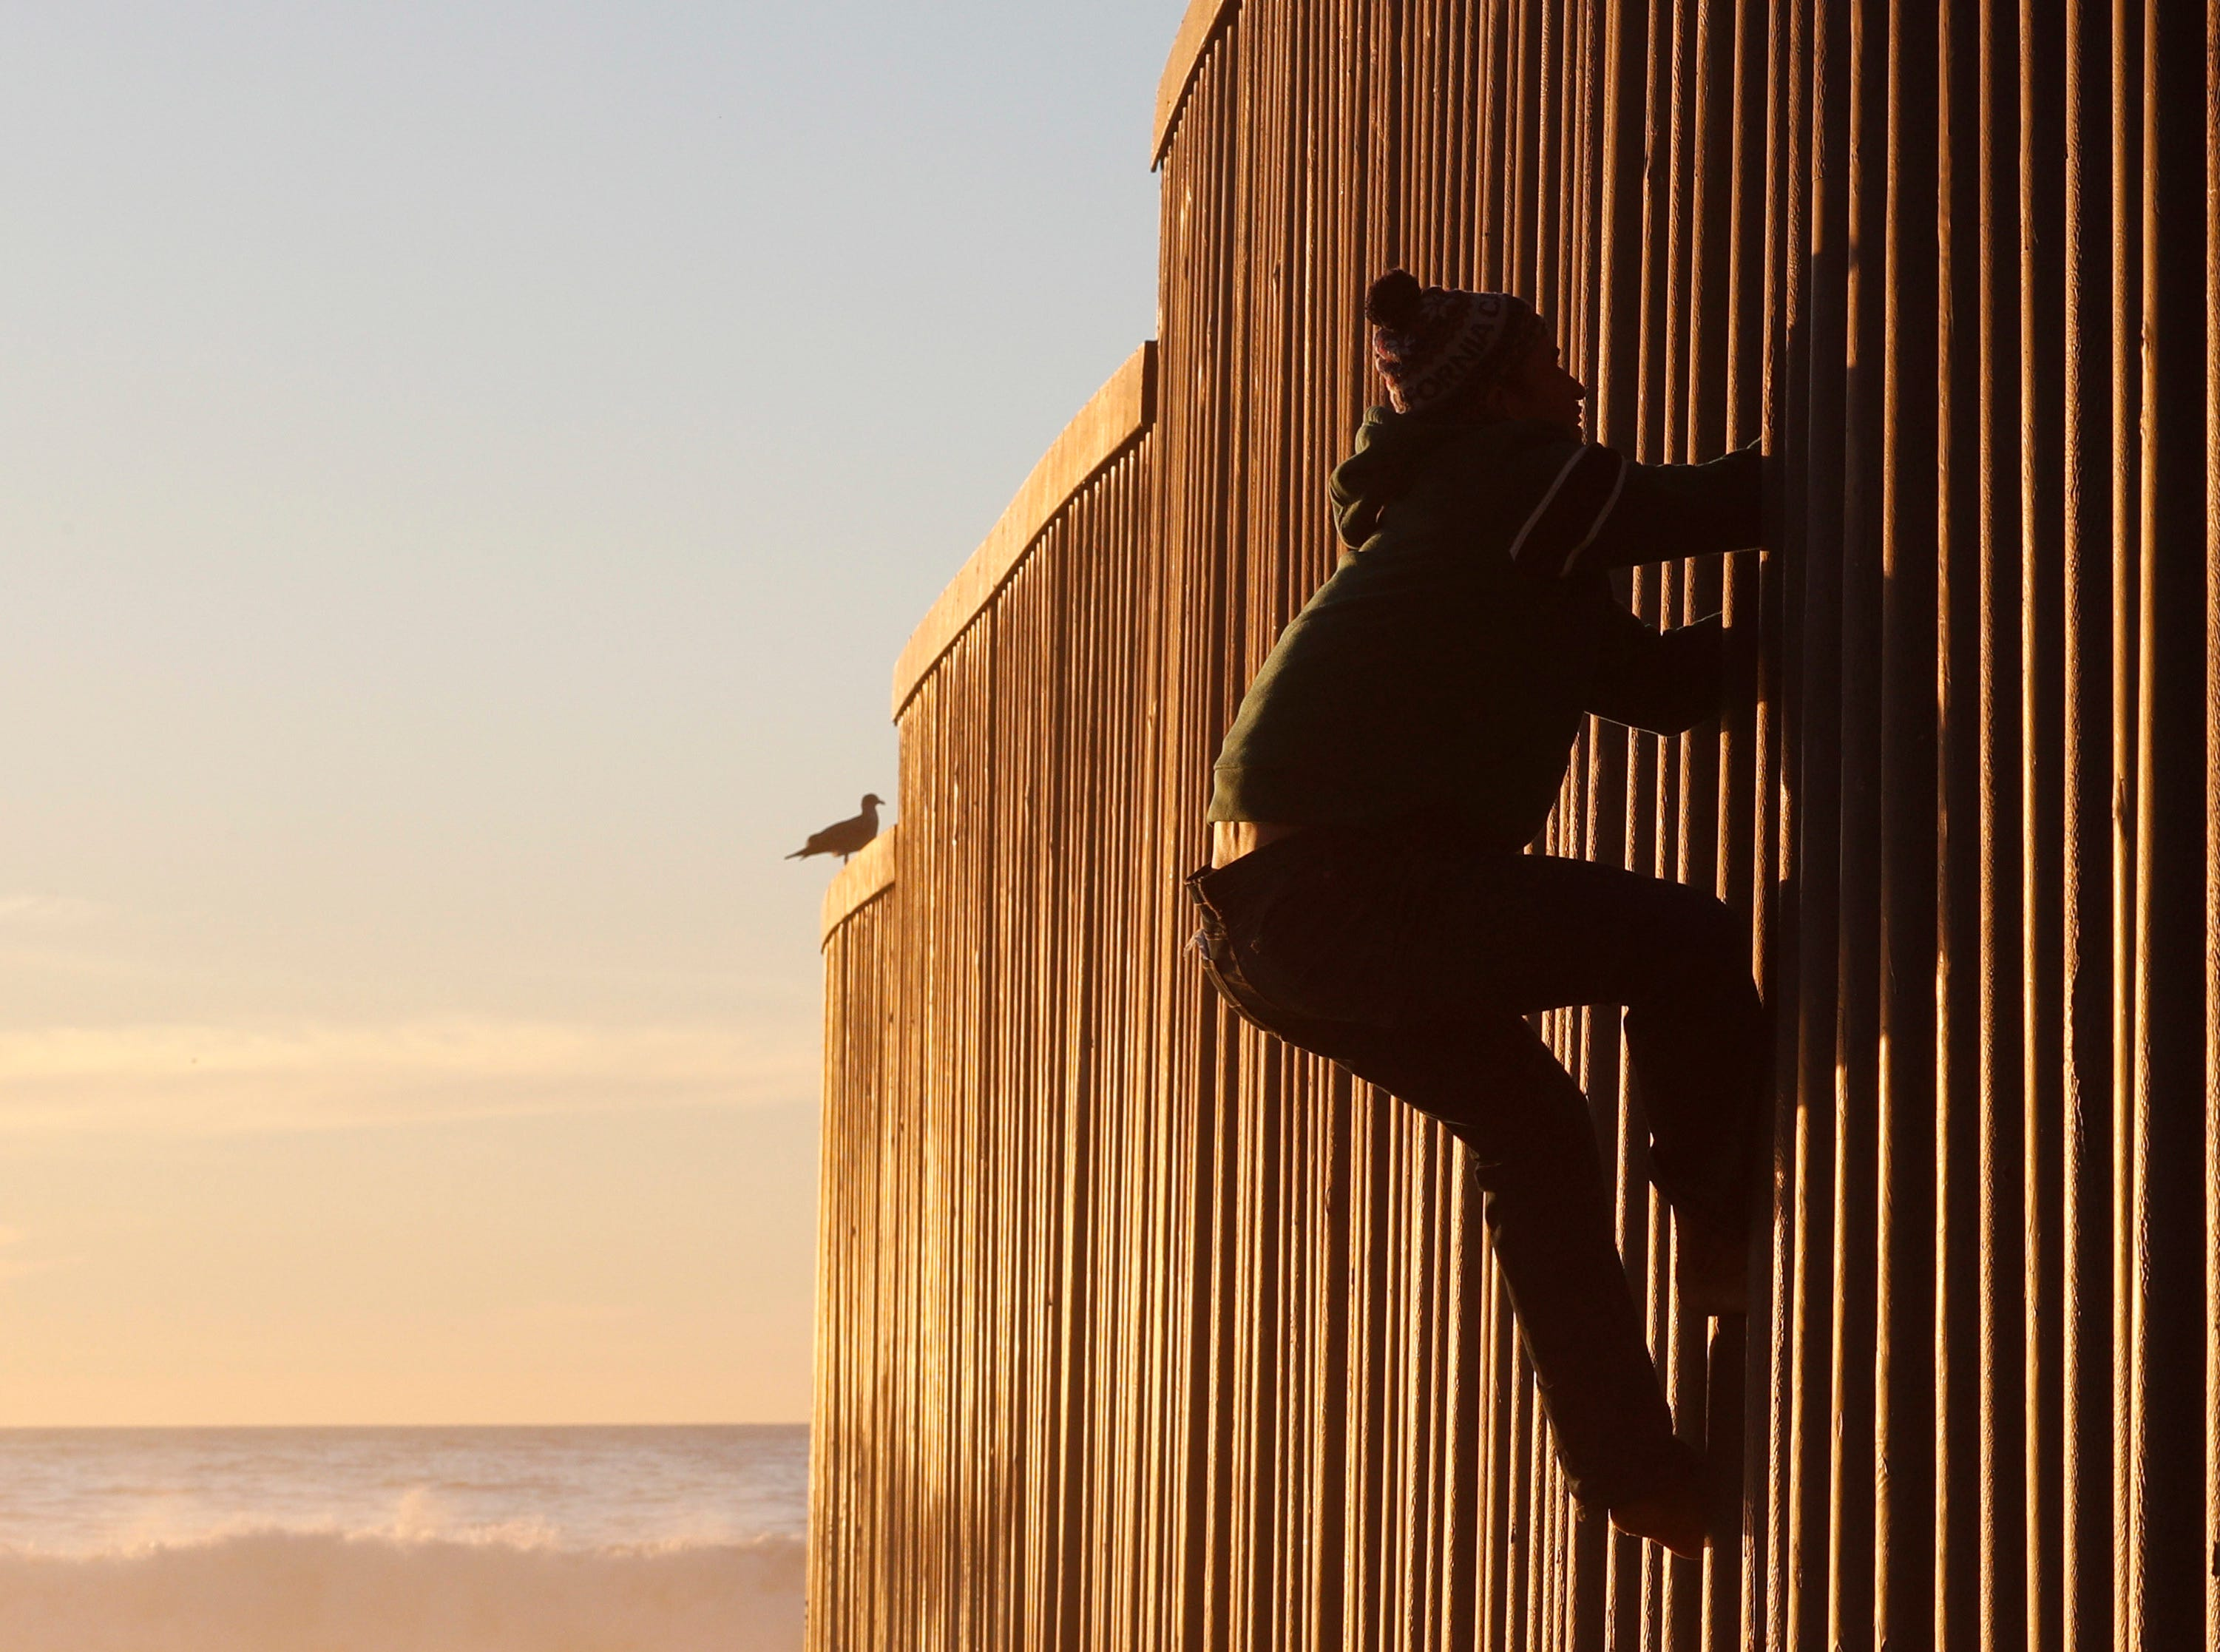 Honduran migrant Jonatan Matamoros Flores, 33, who arrived in October with a migrant caravan, climbs the U.S. border wall to stand atop it before returning to the Mexican side in Tijuana, Mexico, Saturday, Dec. 8, 2018. U.S. inspectors at the main border crossing in San Diego are processing up to about 100 asylum claims day, leaving thousands of migrants waiting in Tijuana, while some are avoiding the wait by crossing illegally to turn themselves in.